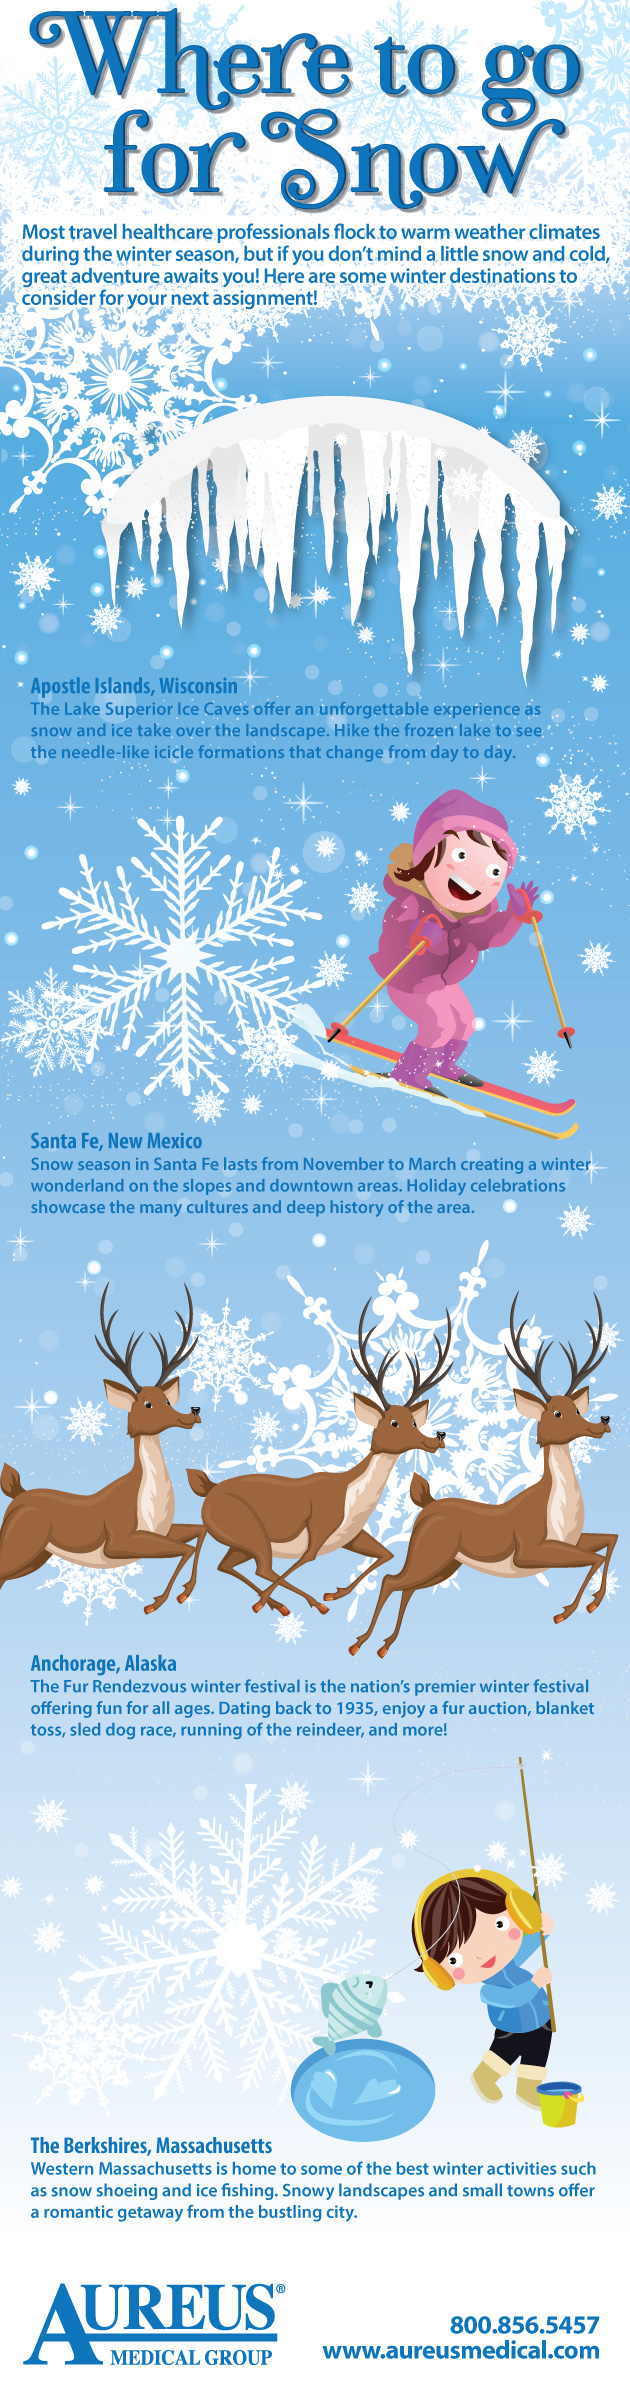 Where to go for Snow #infographic #Travel #infographics #Snow #Health & Fitness